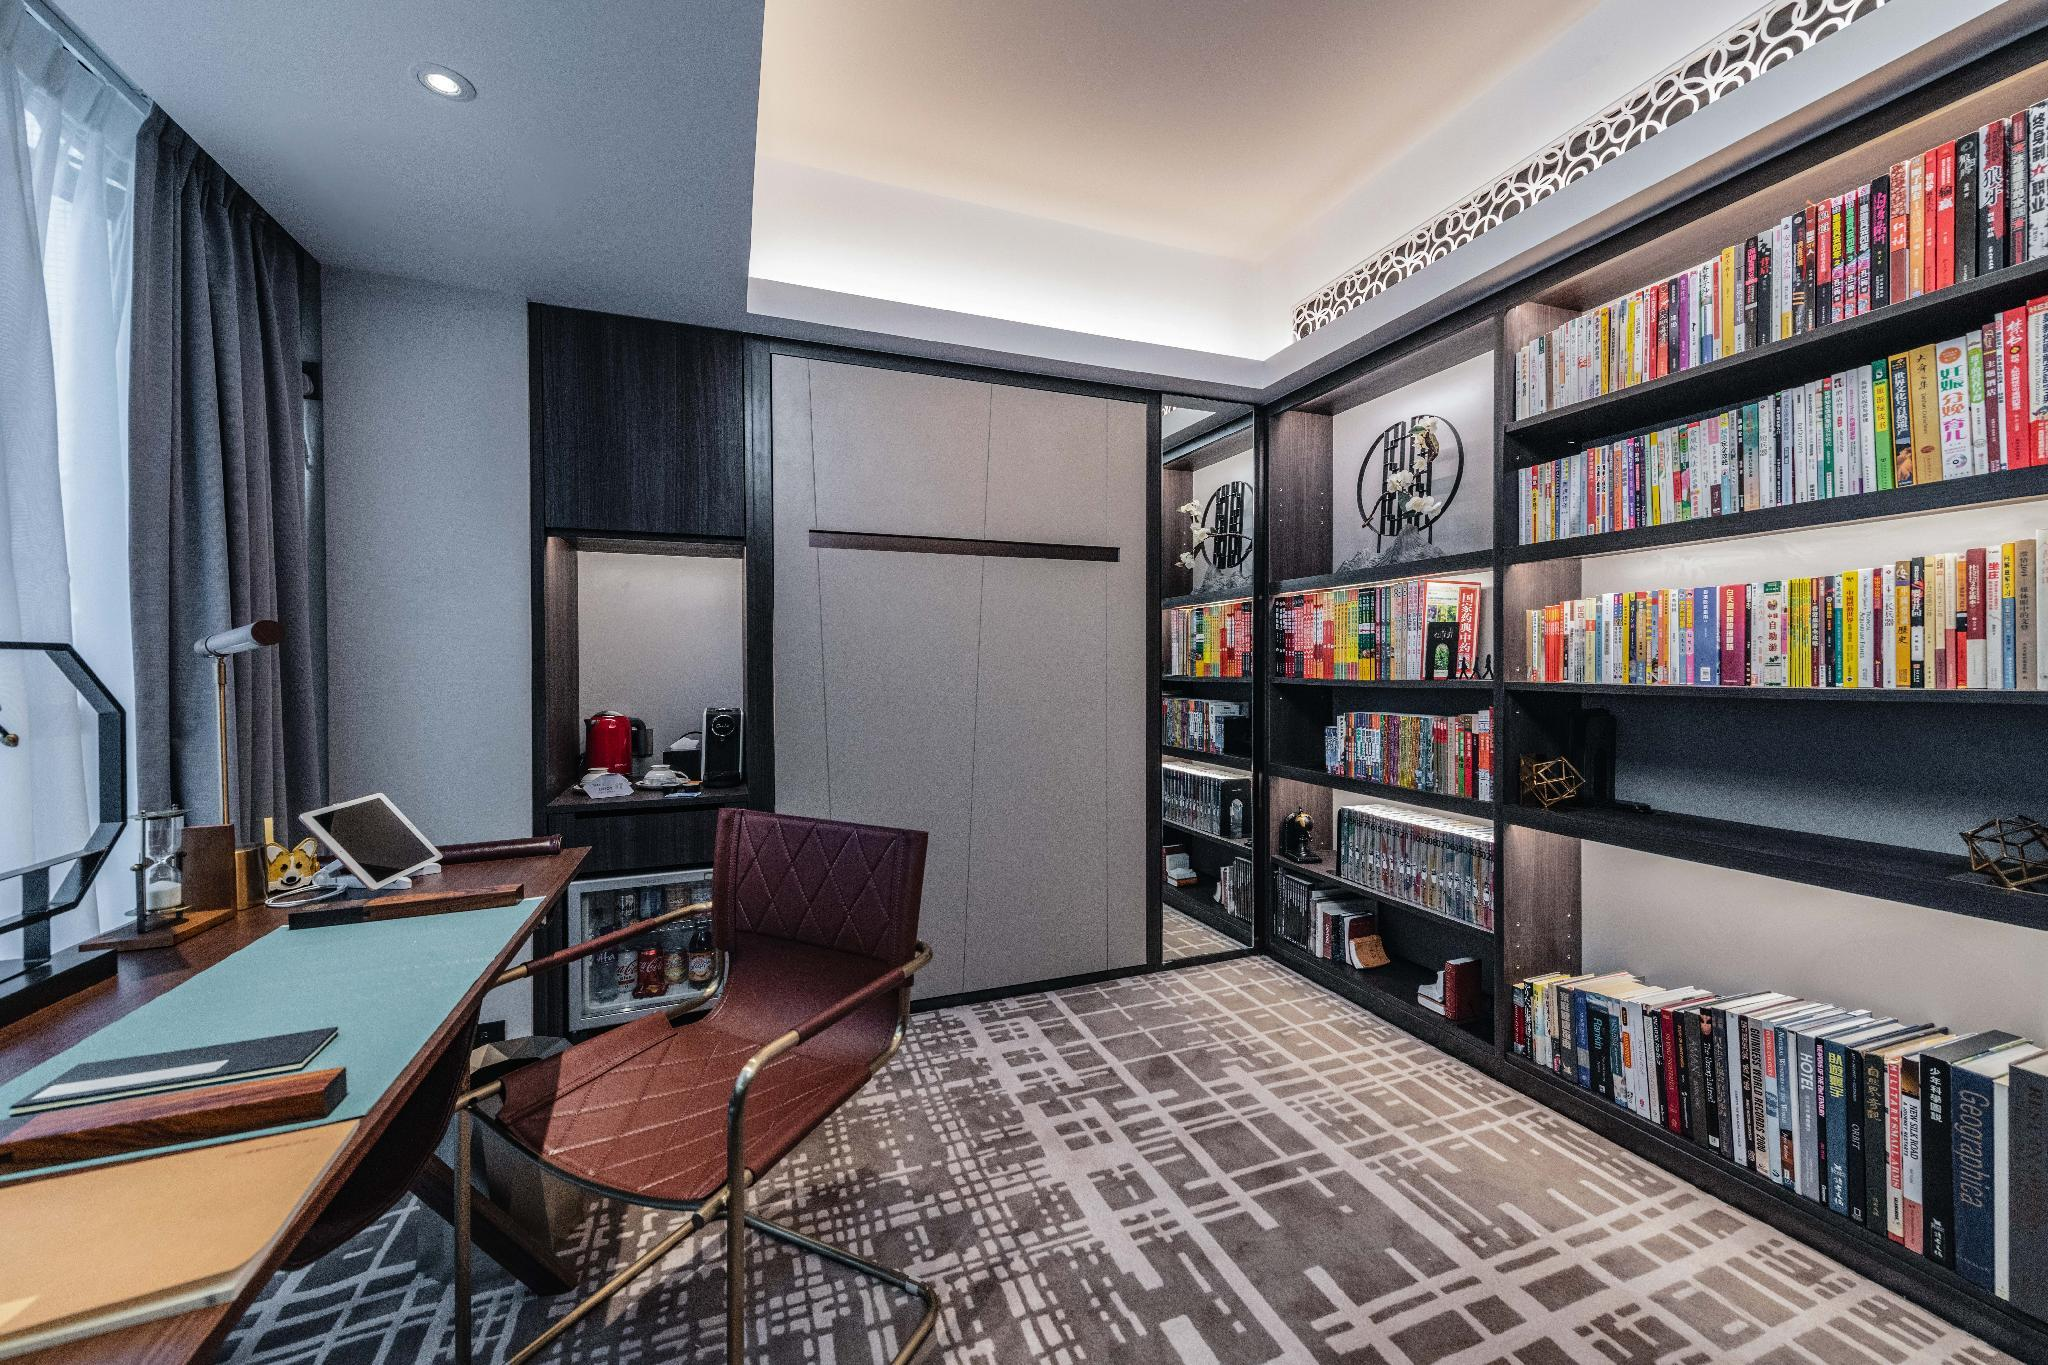 Book-Themed Room